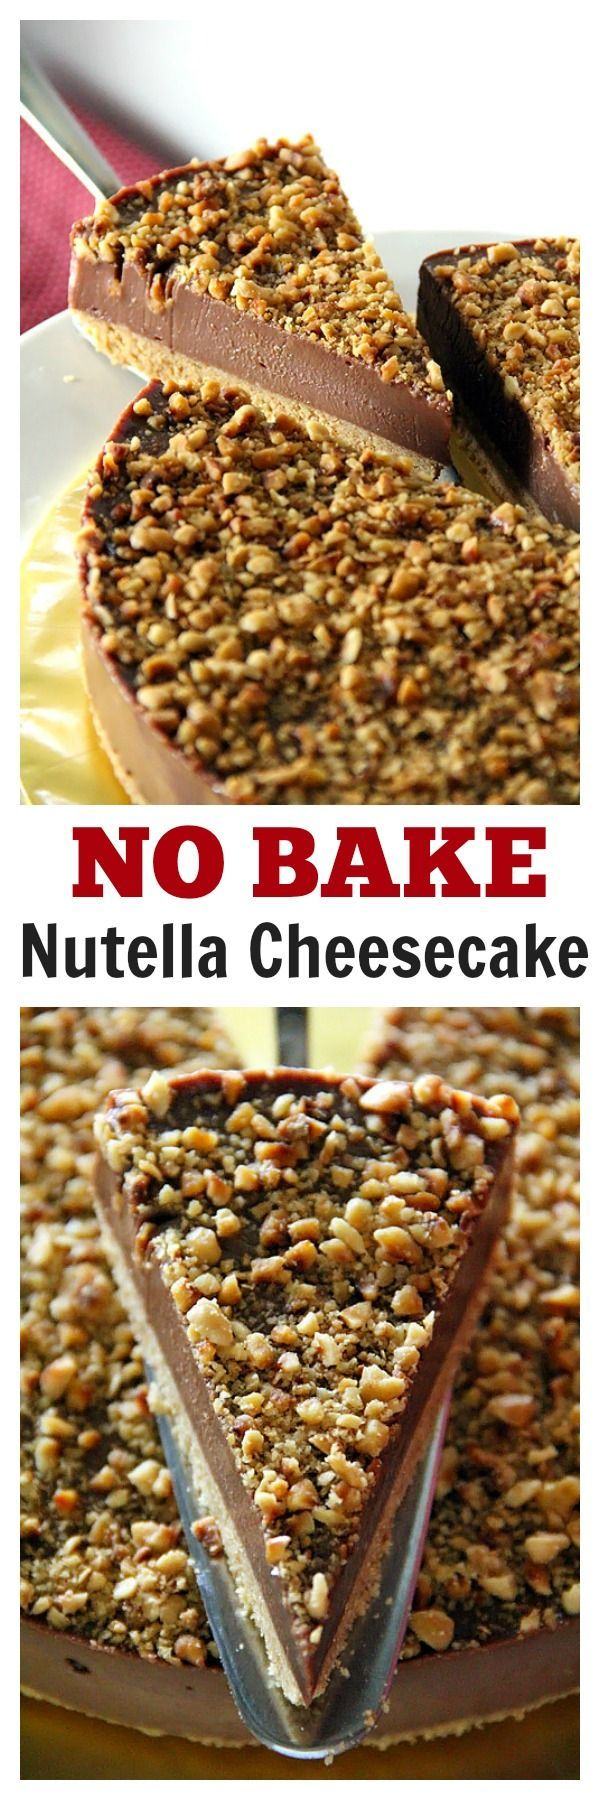 Nutella Cheesecake → Makes 1 cake | Prep Time: 20 mins | Bake Time: None (refrigerate for at least 4 hours)